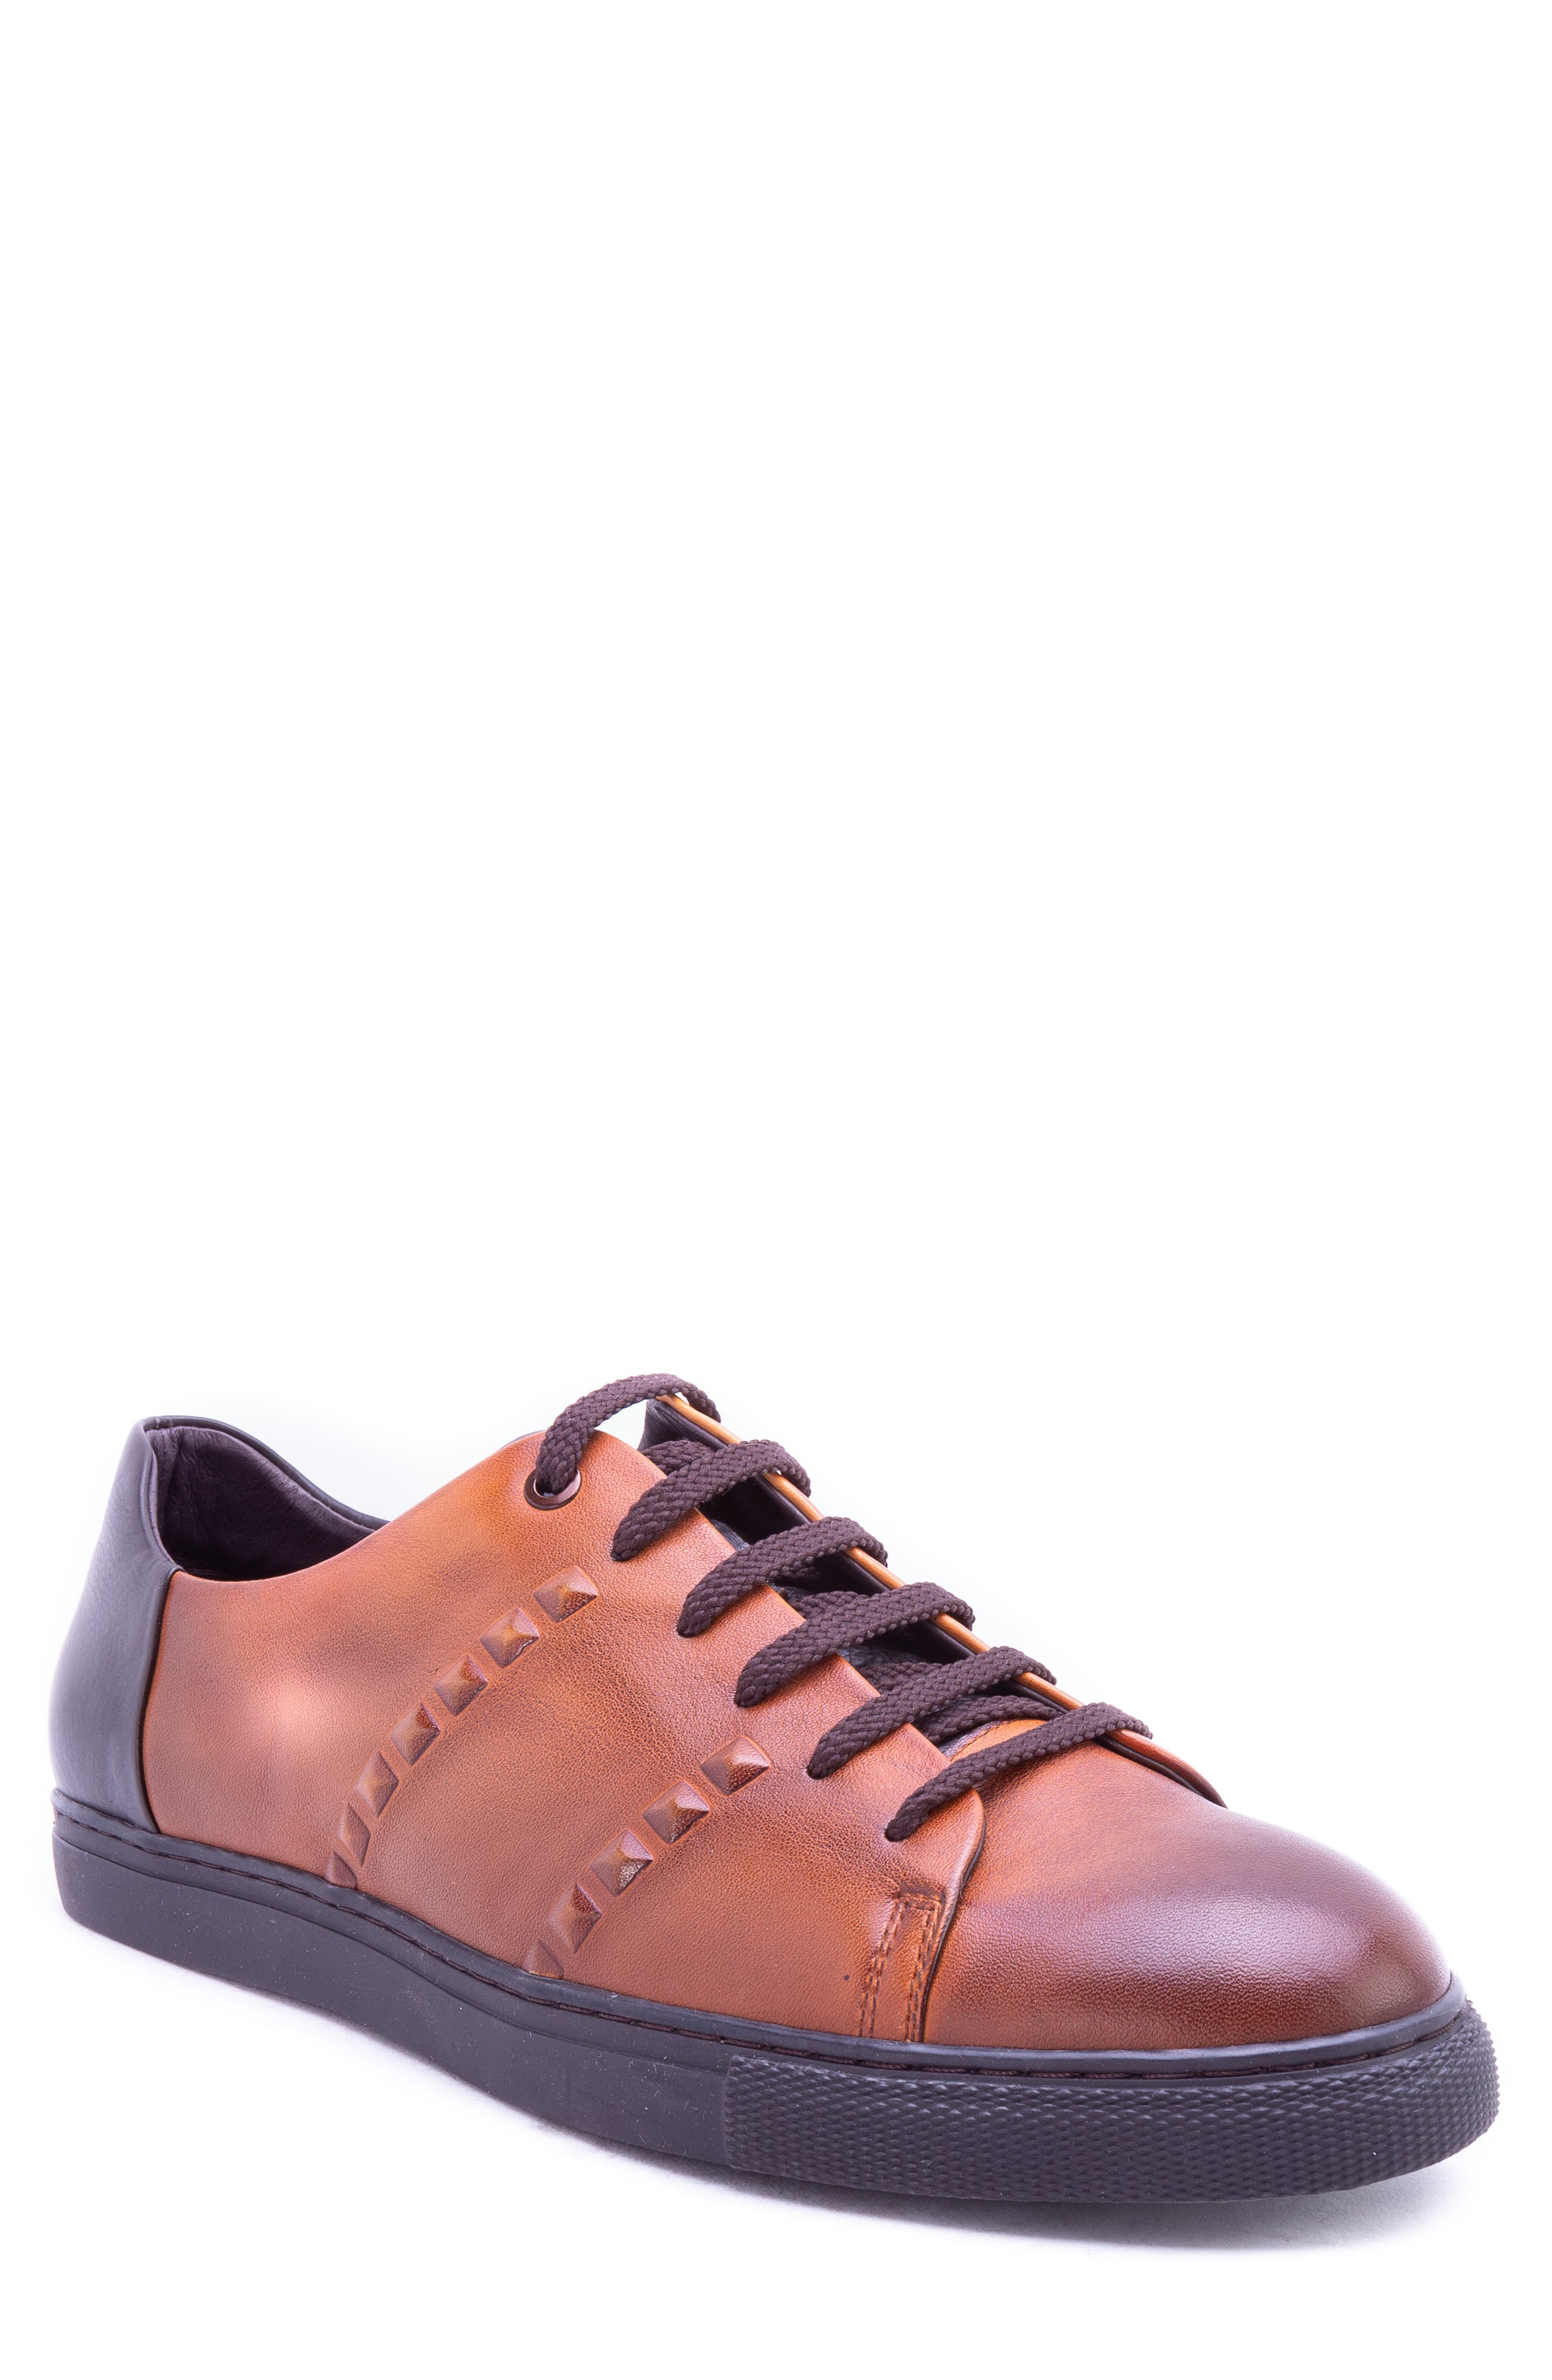 Strozzi Studded Sneaker,                         Main,                         color, COGNAC LEATHER